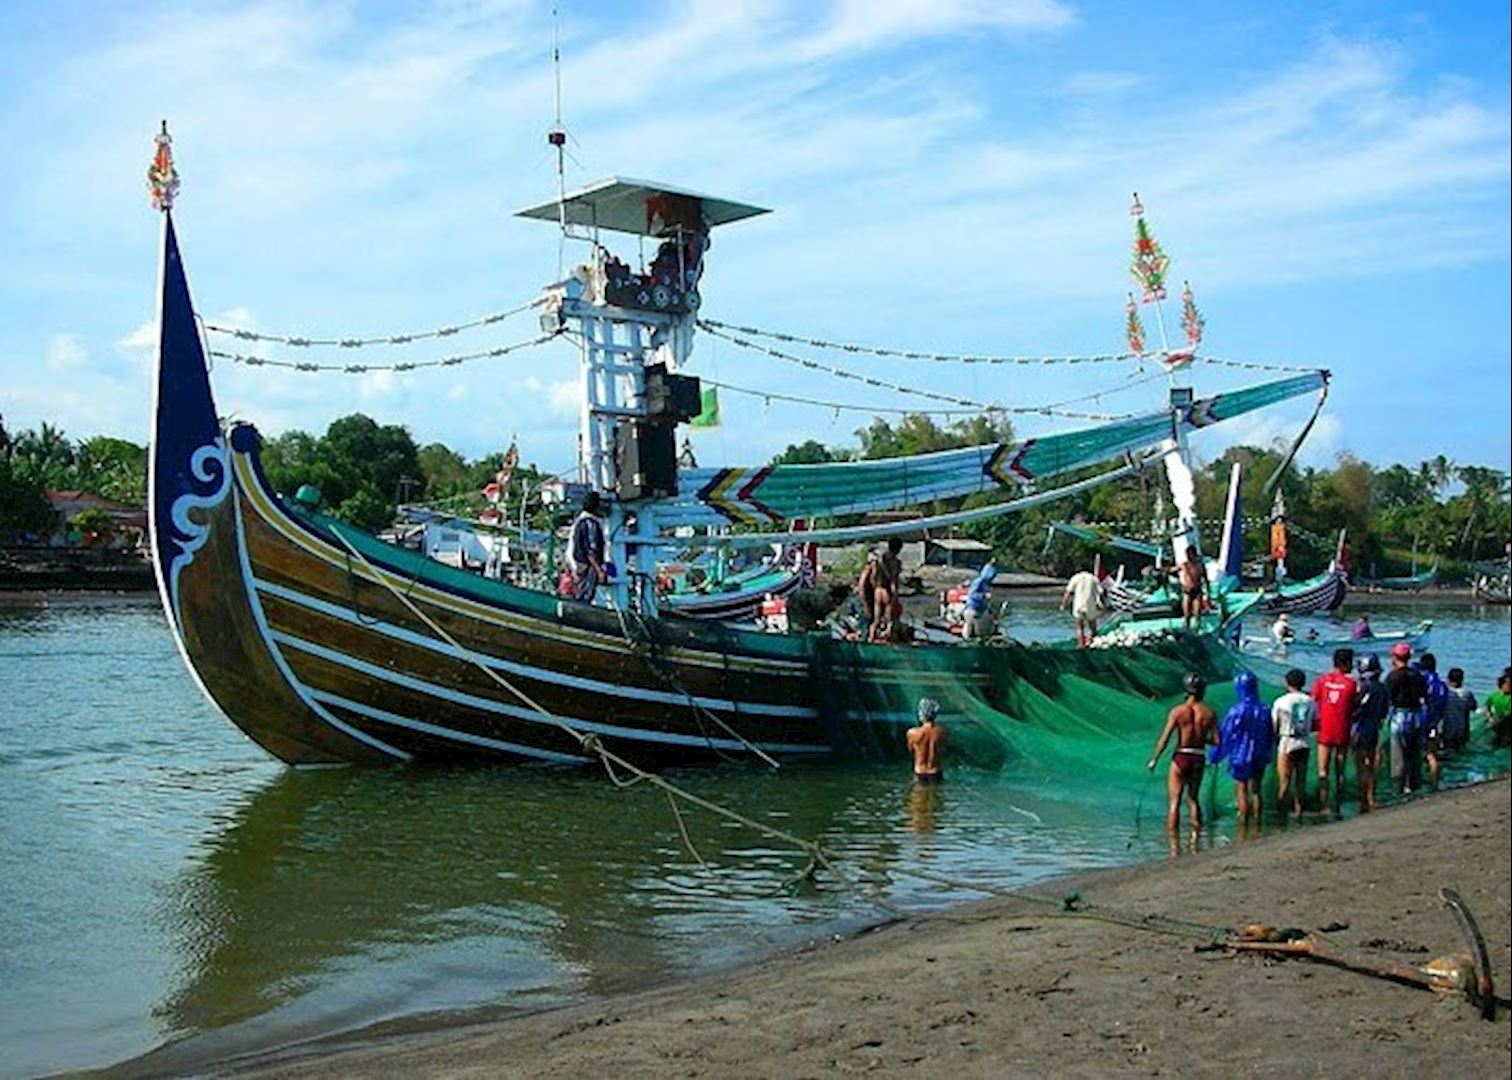 Visit medewi on a trip to indonesia audley travel for Fishing spots near me no boat